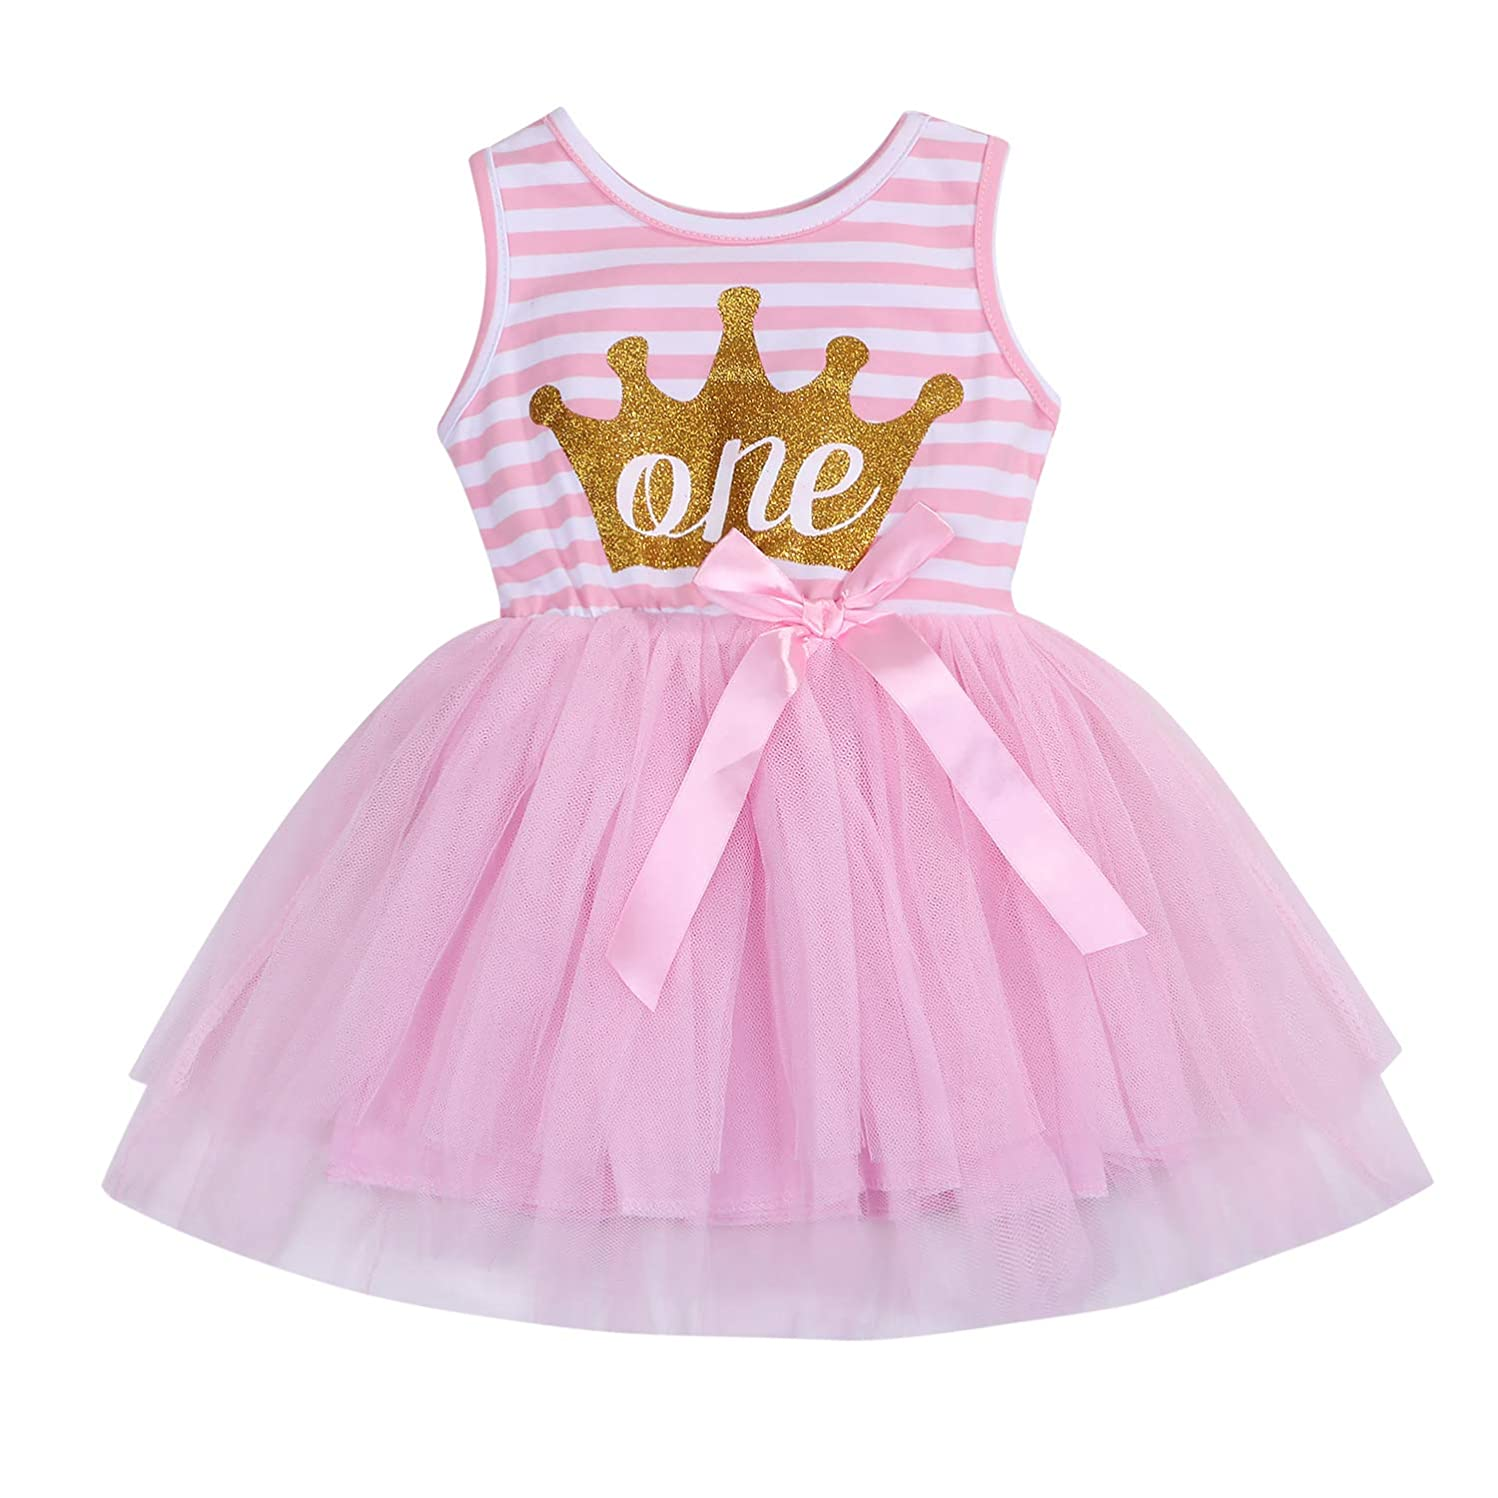 3Pcs Baby Girl One 1st Birthday Outfits Floral Romper Tulle Tutu Skirt Set Party Dress Costume Clothes